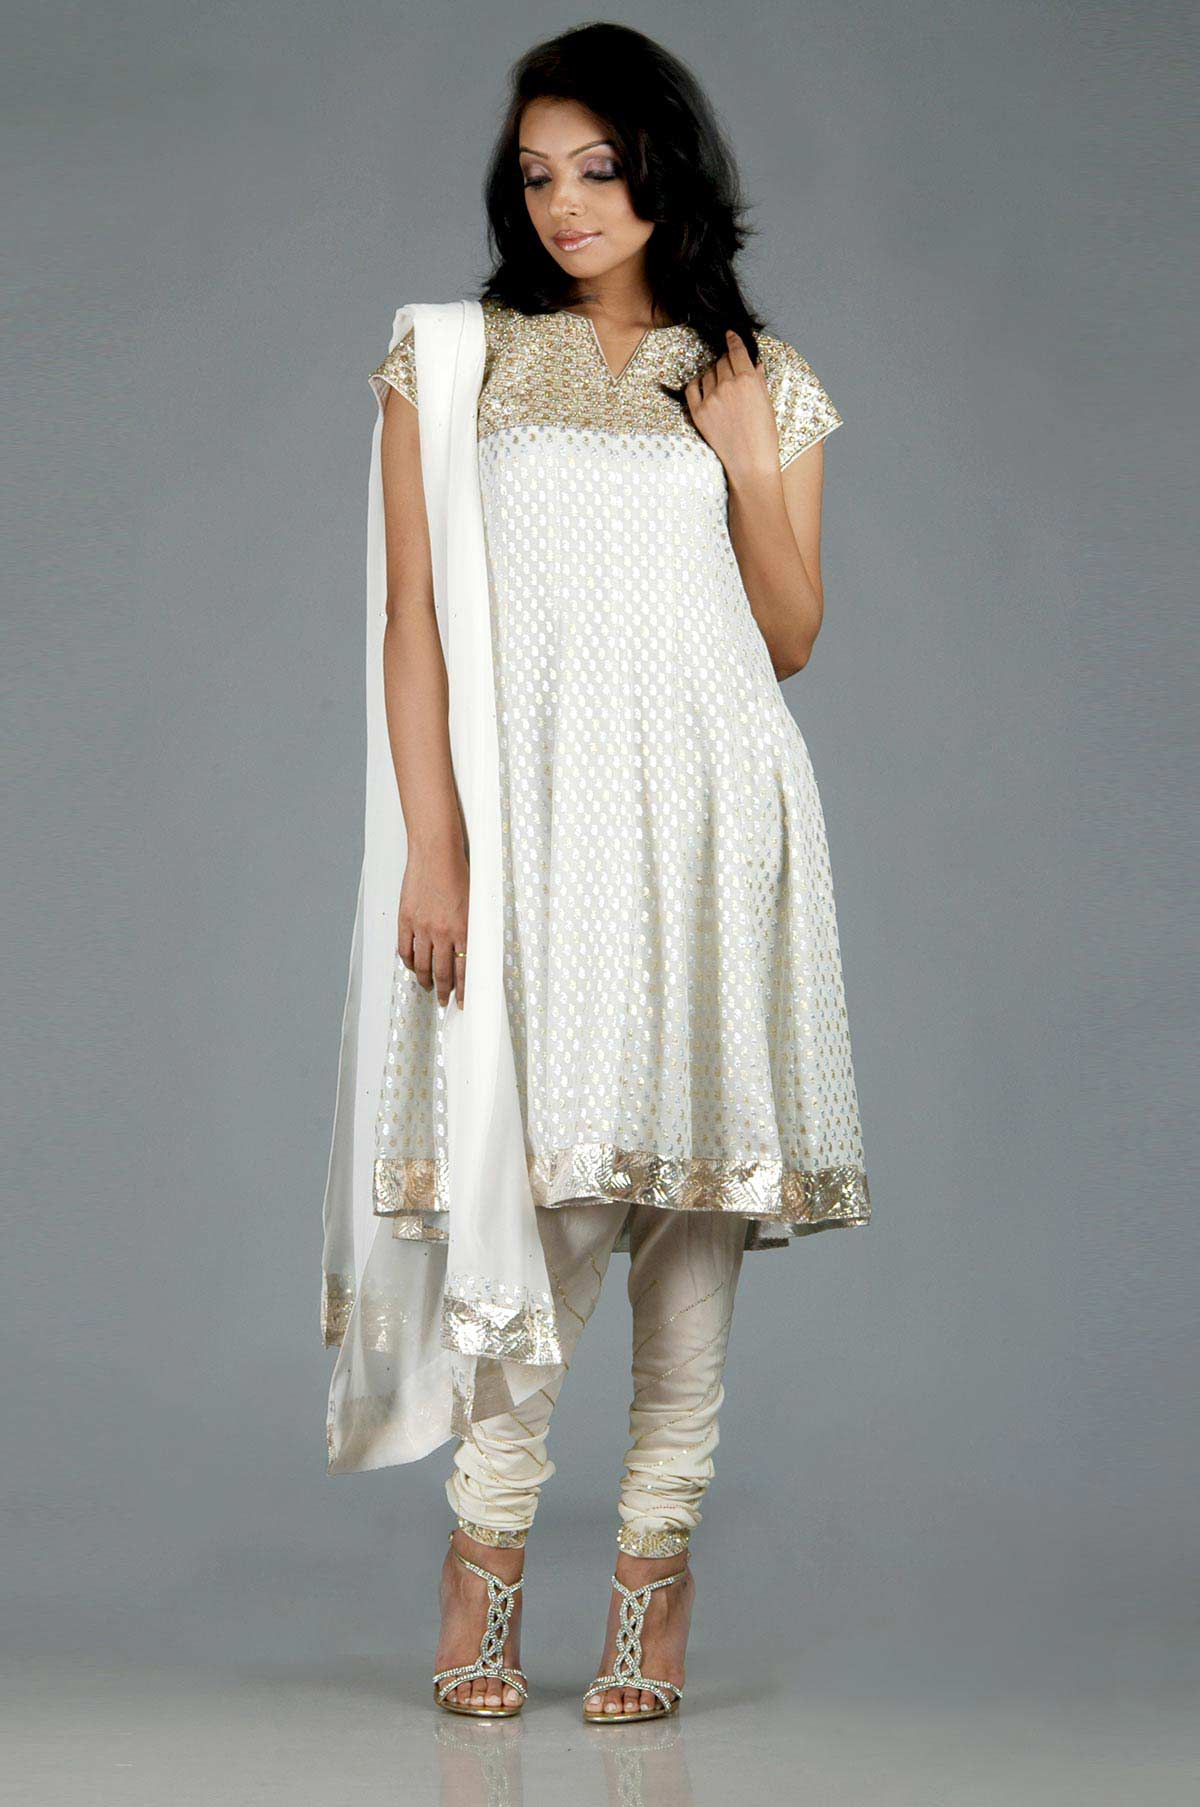 Latest White Salwar Kameez Designs  SheClickcom